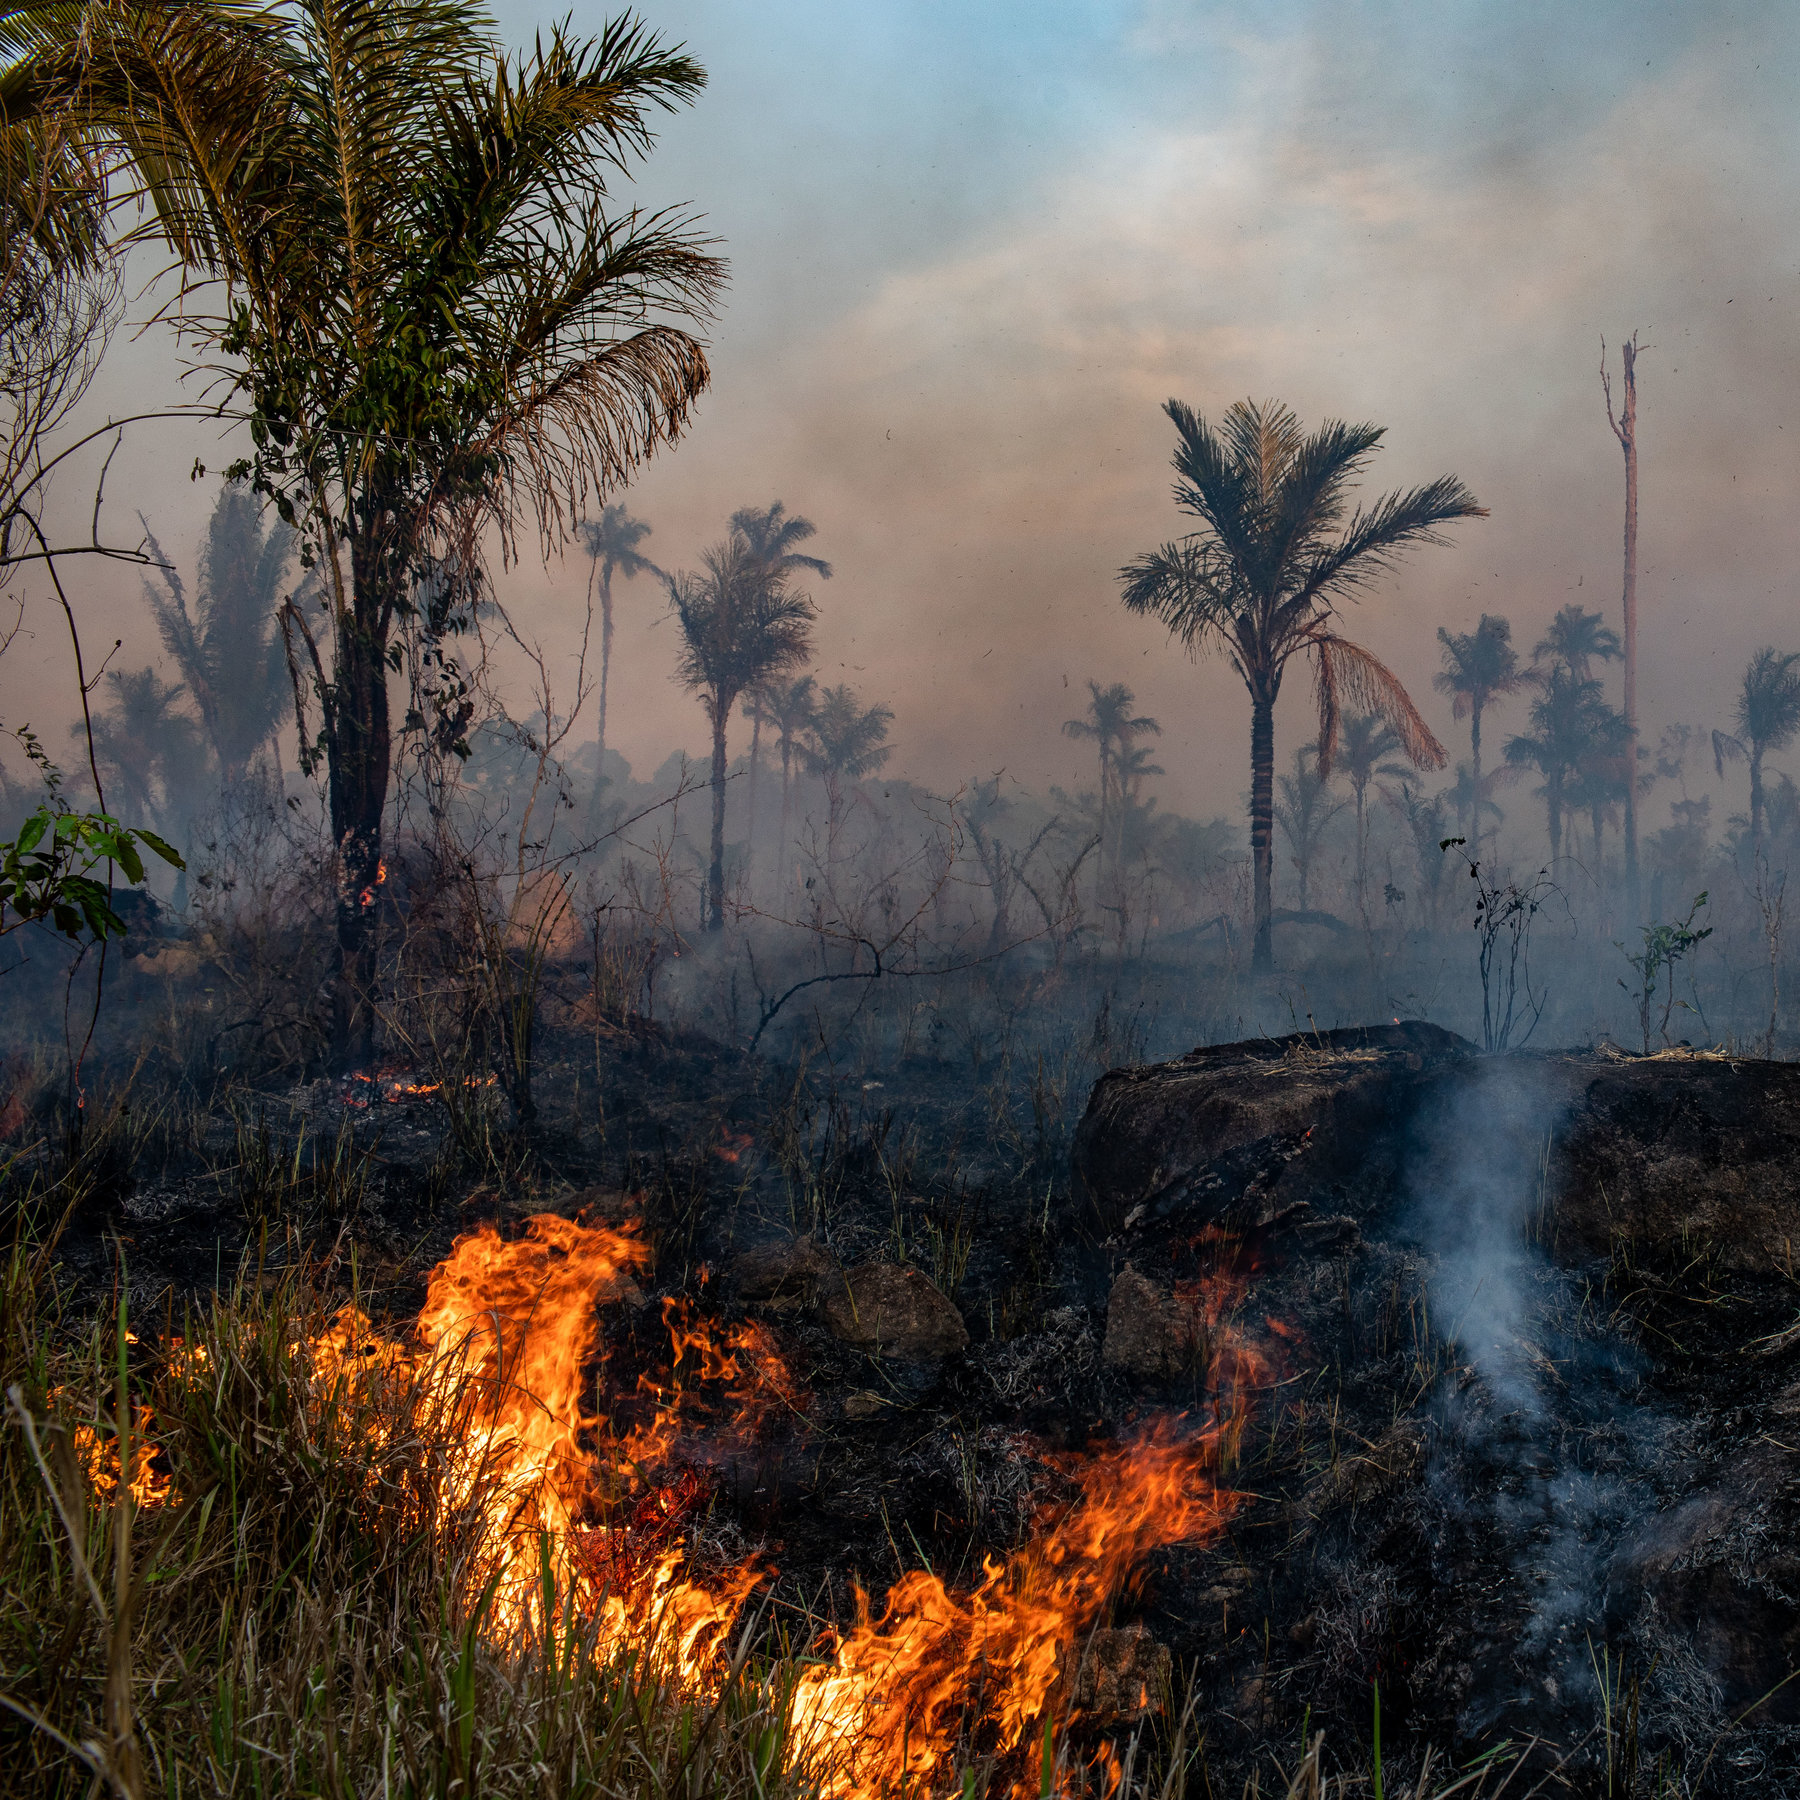 For example, they regulate the water balance of the soil, store the co 2 and are the basis of life for the majority of all. Amazon Deforestation Soars As Pandemic Hobbles Enforcement The New York Times